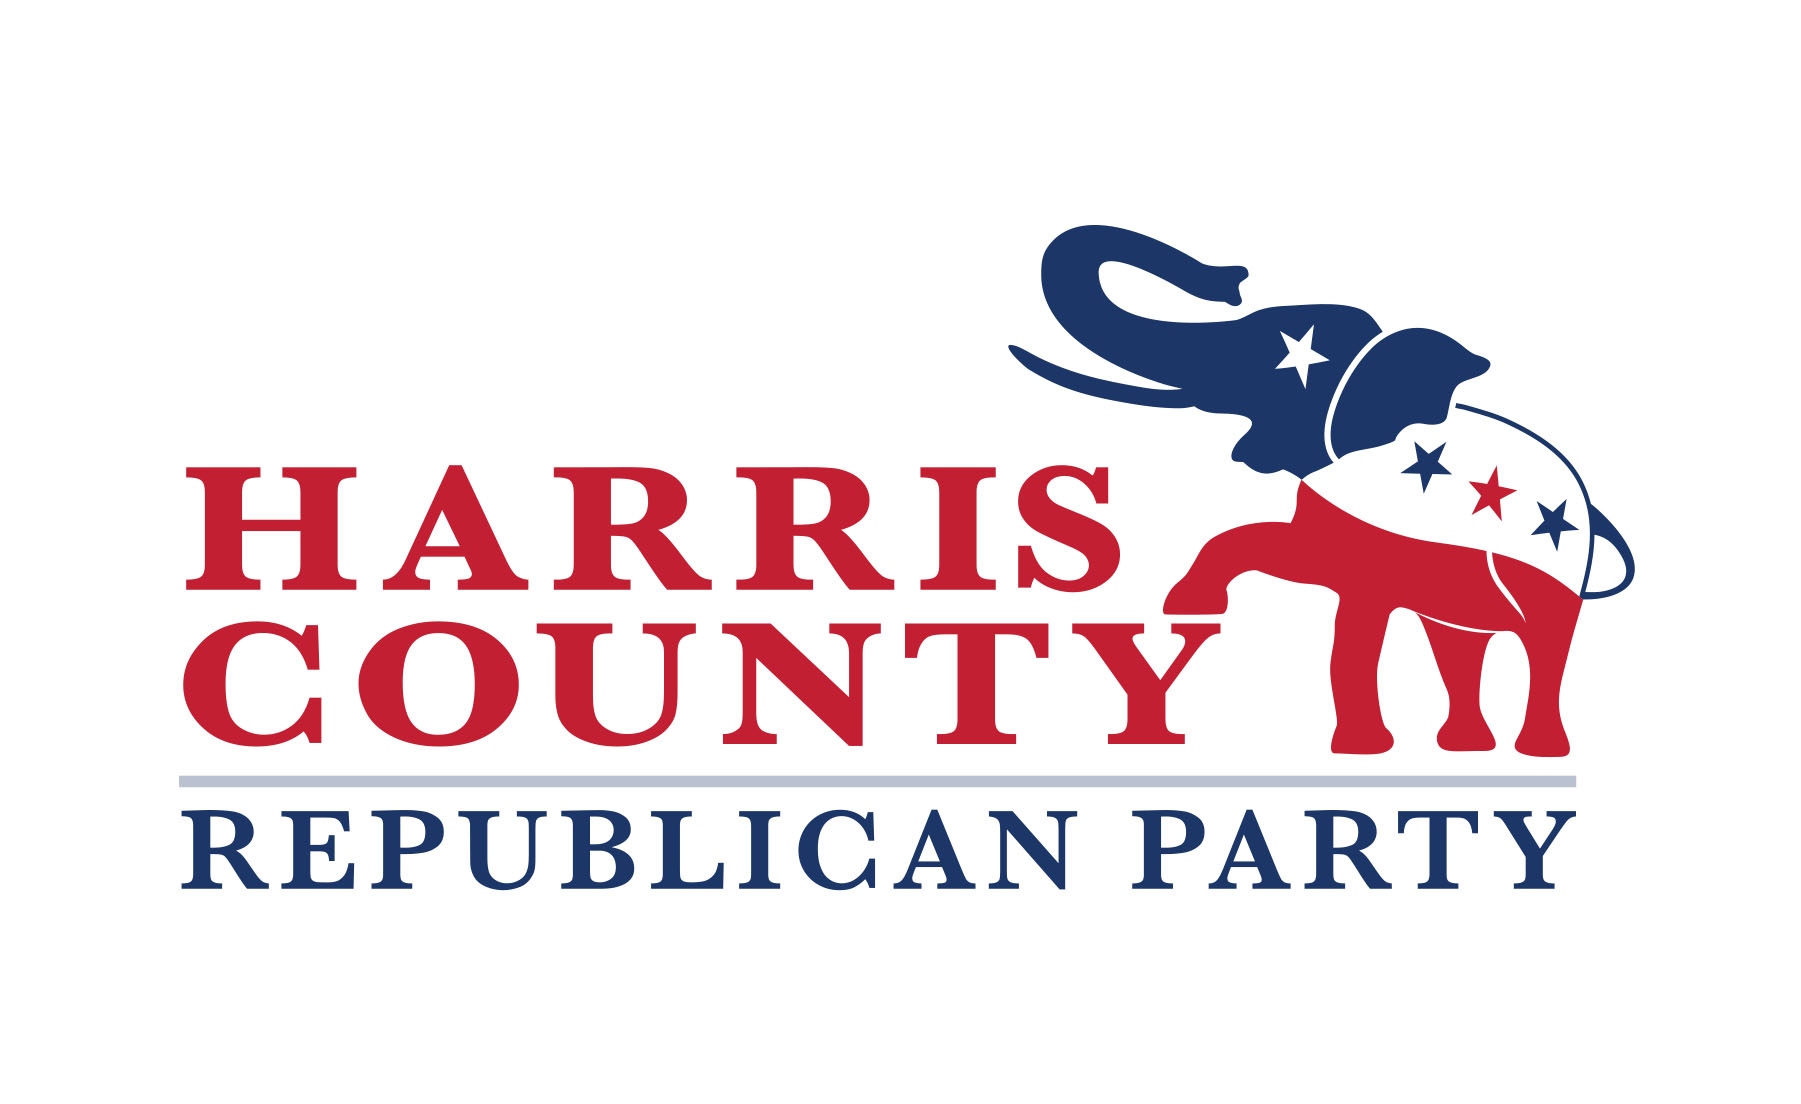 Our Party Harris County Republican Party